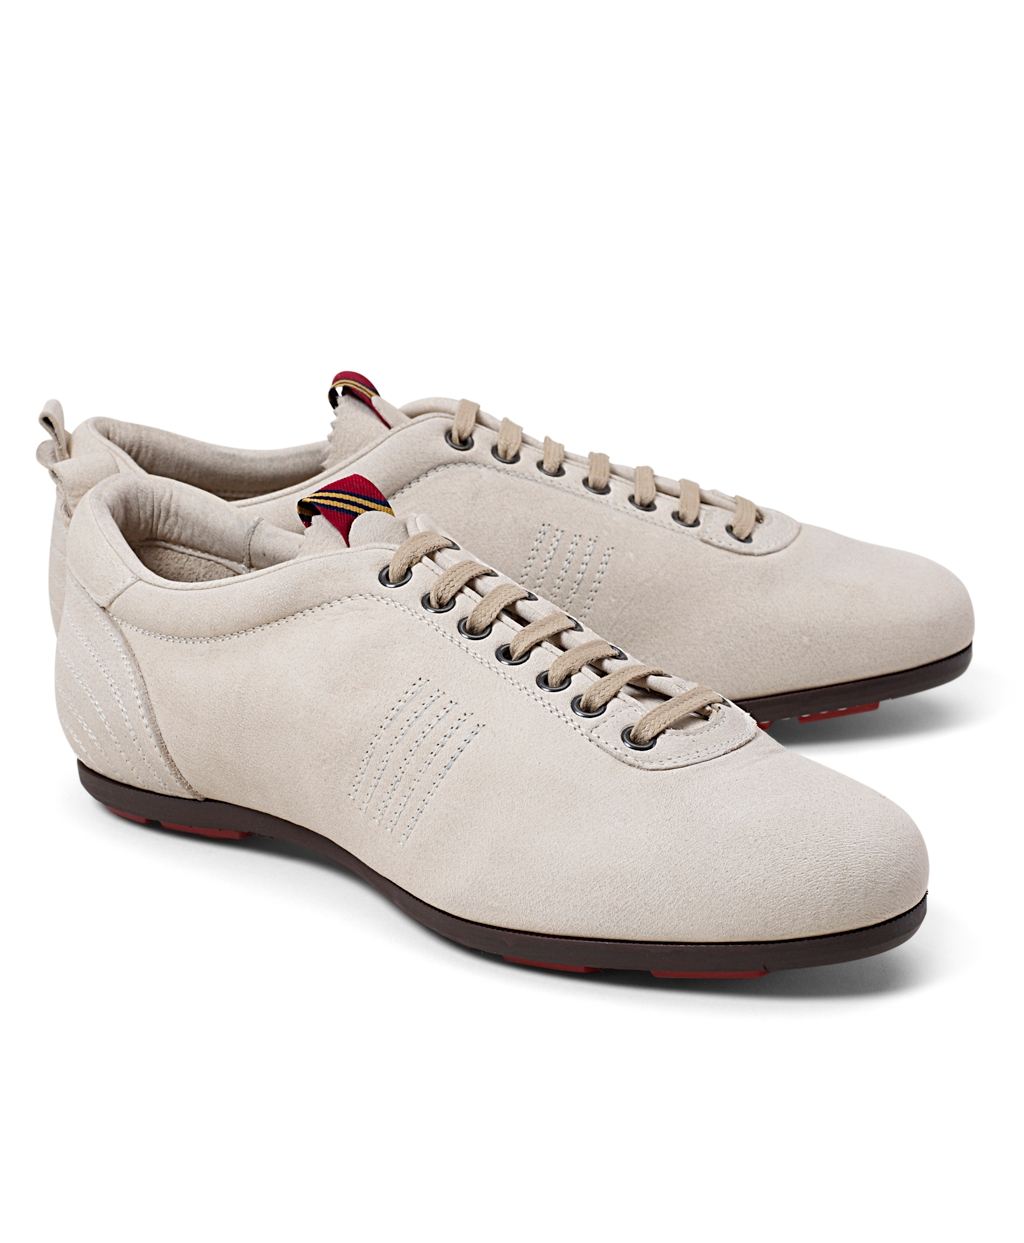 Brooks Brothers Pantofola Doro Suede Sneakers In Natural